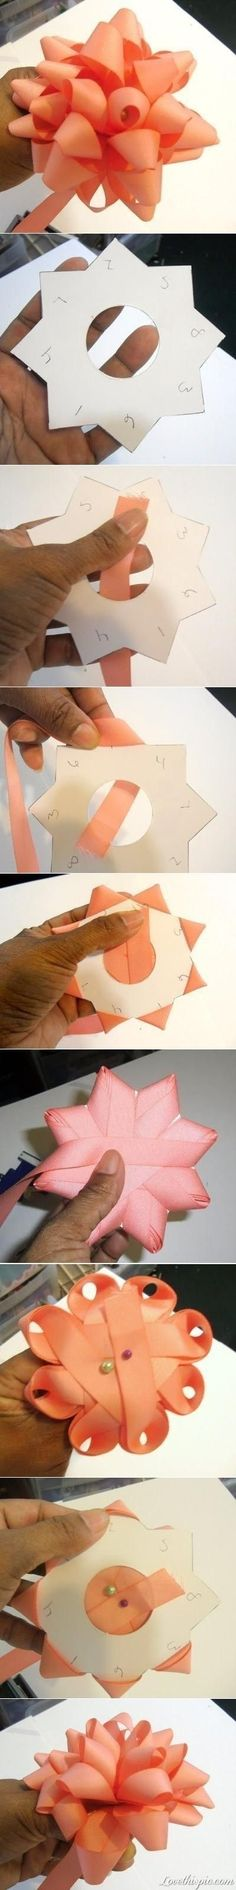 #DIY #Bow #Ribbon Pictures, Photos, and Images for Facebook, Tumblr, Pinterest, and Twitter